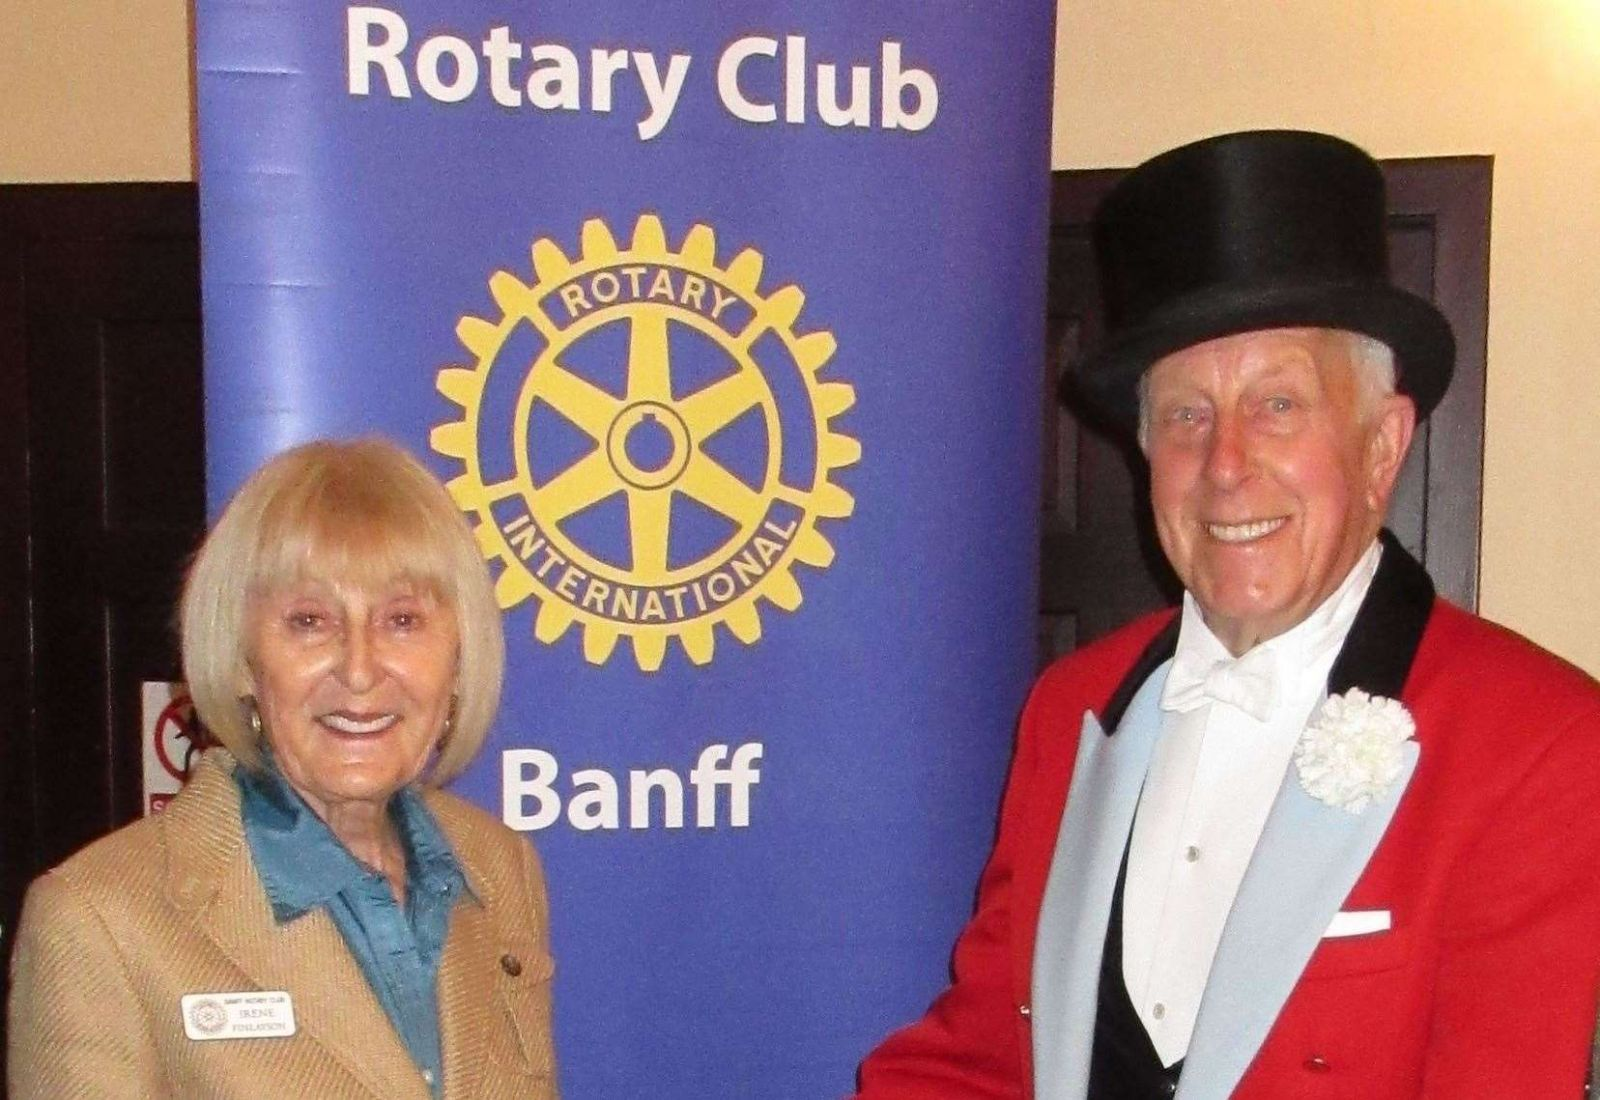 Norman Barrett MBE at Banff Rotary Club. Image: Grampian Online